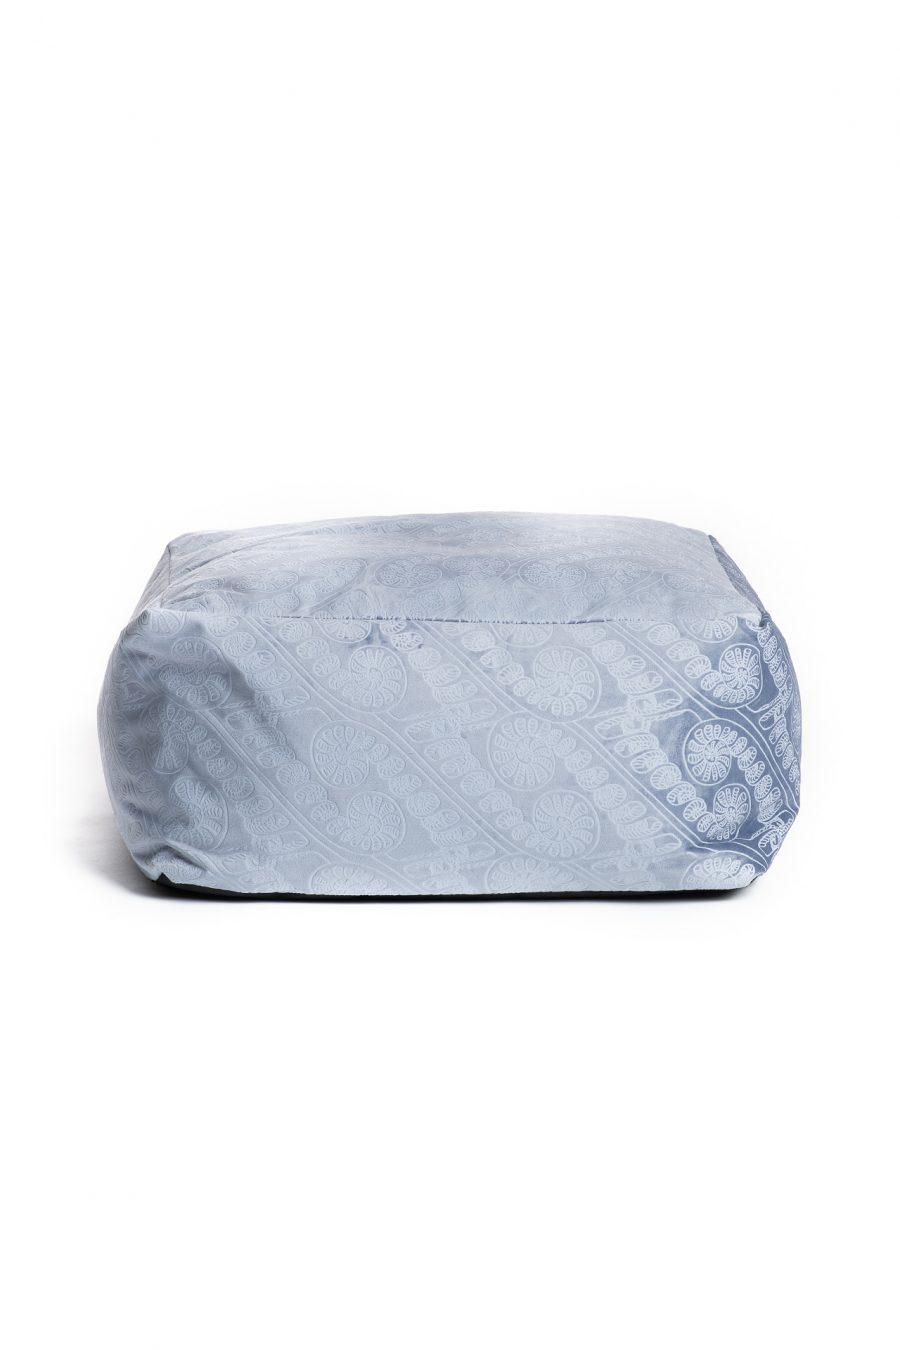 Square Bean Bag in Halogen Blue/Folkstone Grey